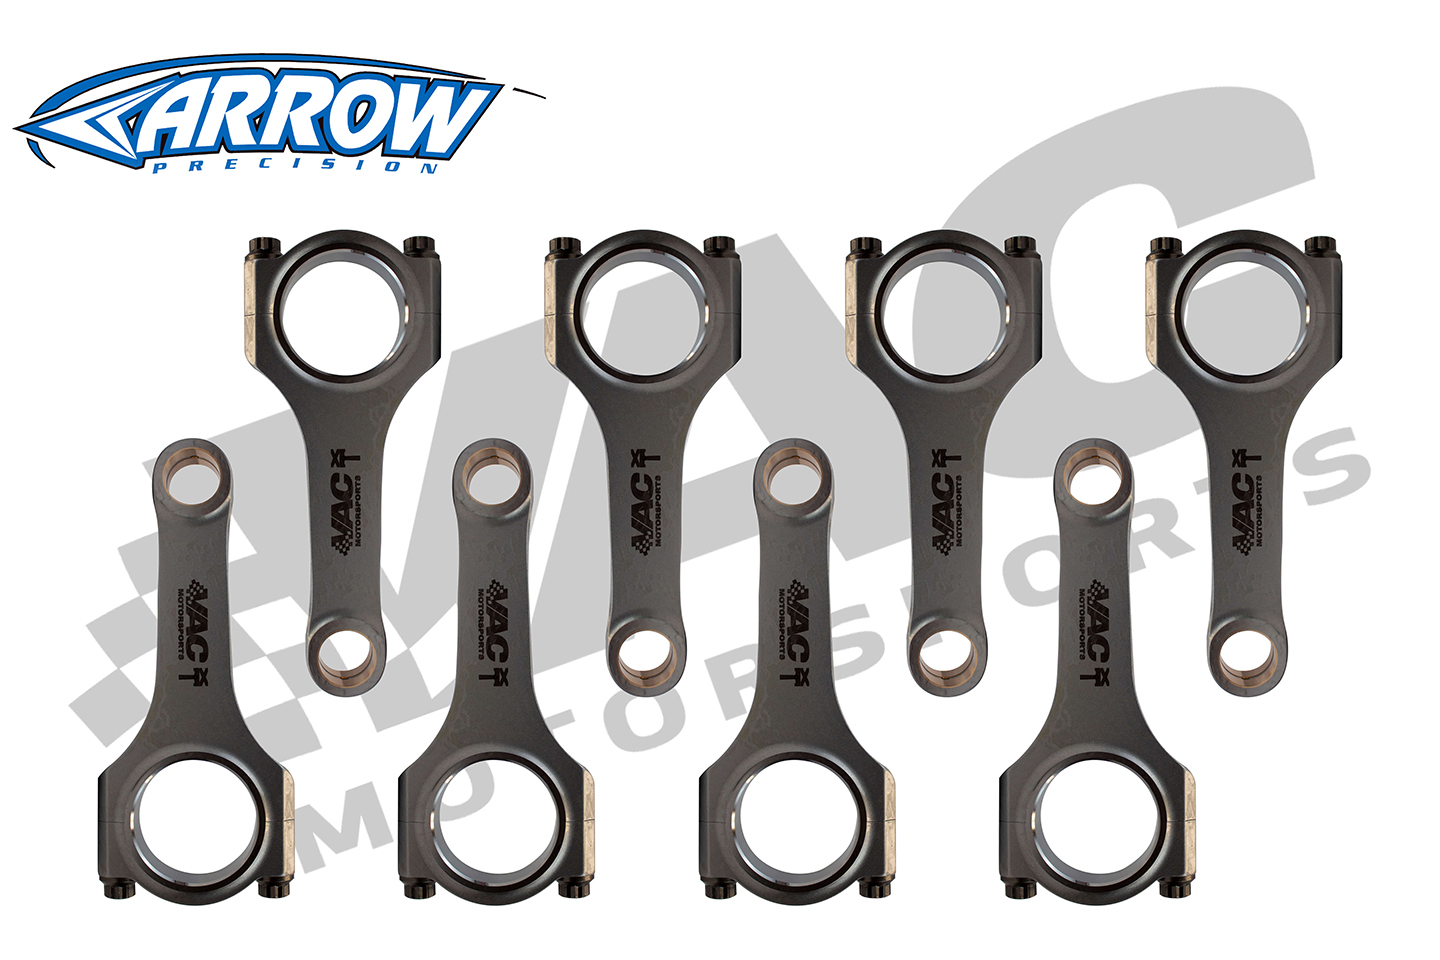 VAC PRO-XTREME Forged Connecting Rods By Arrow, BMW N63/S63 SWATCH